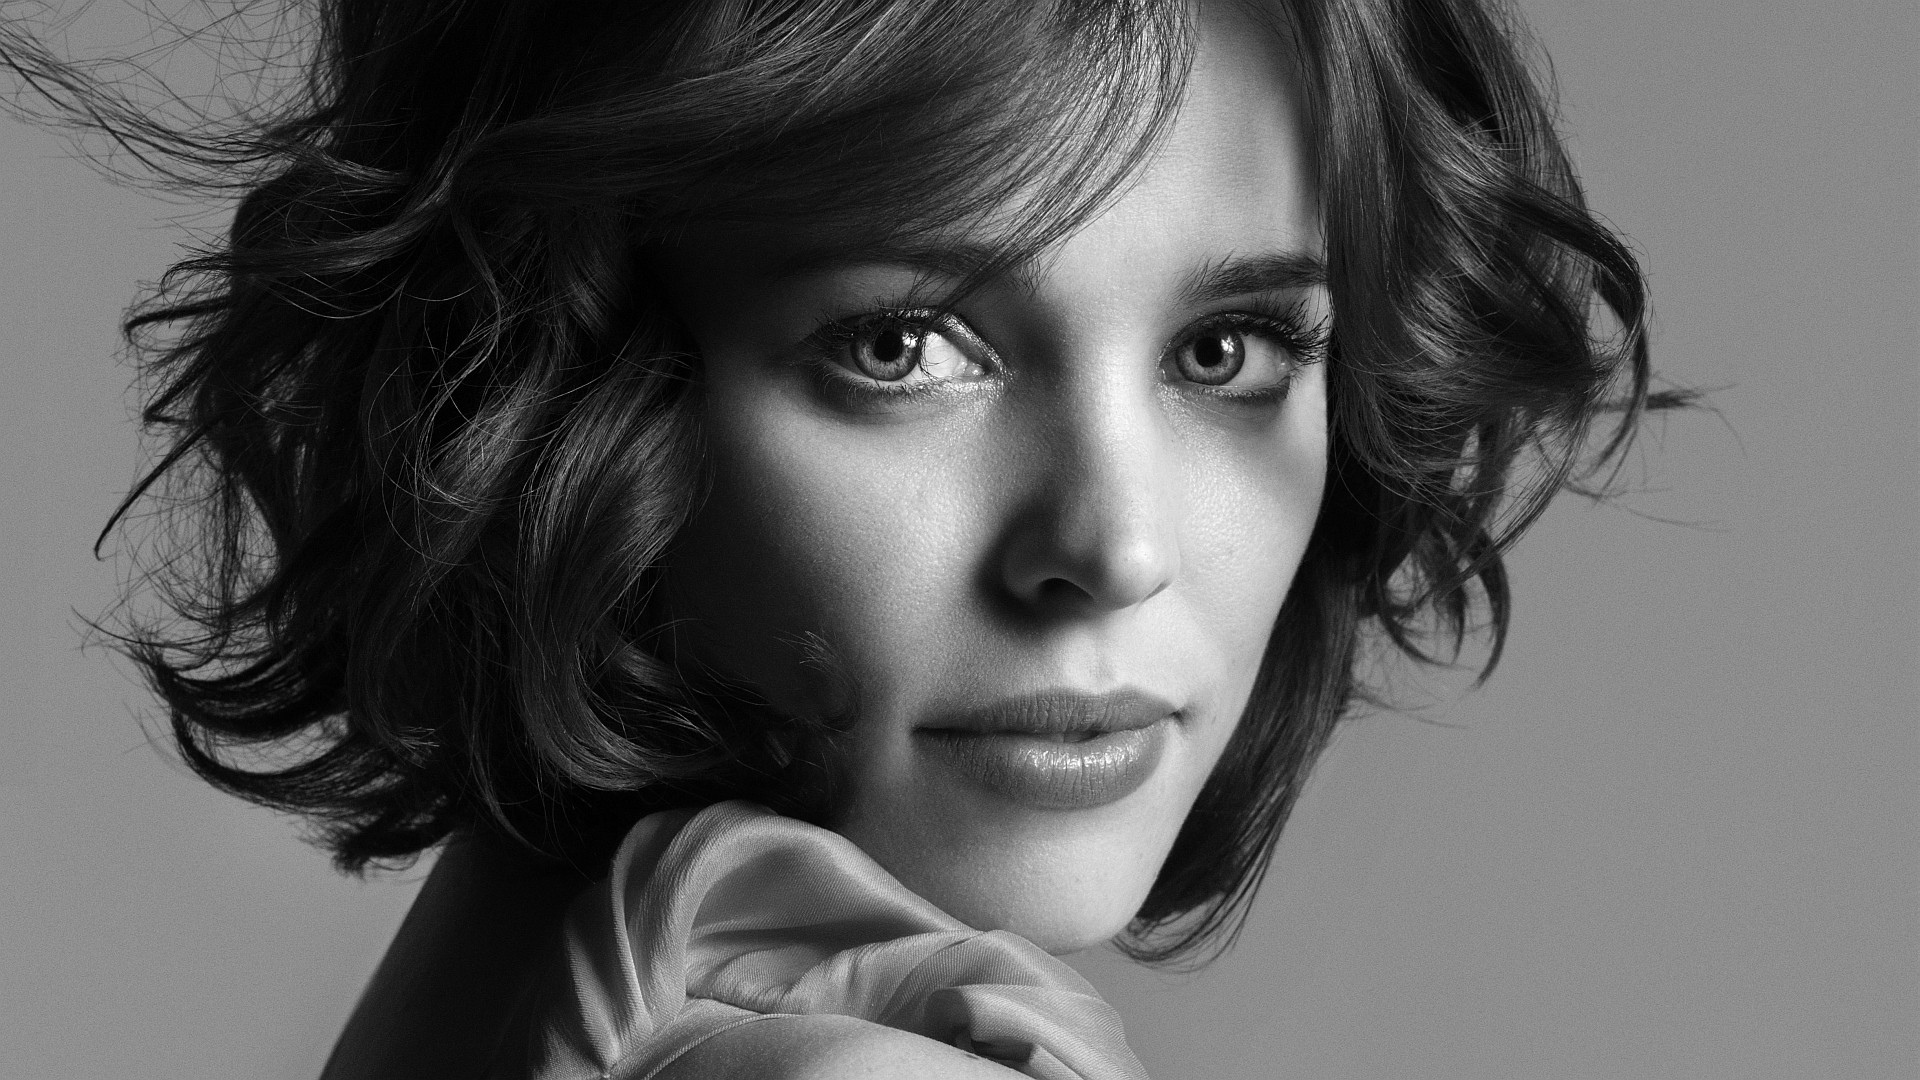 Rachel mcadams wallpapers high resolution and quality download - High resolution wallpaper celebrity ...